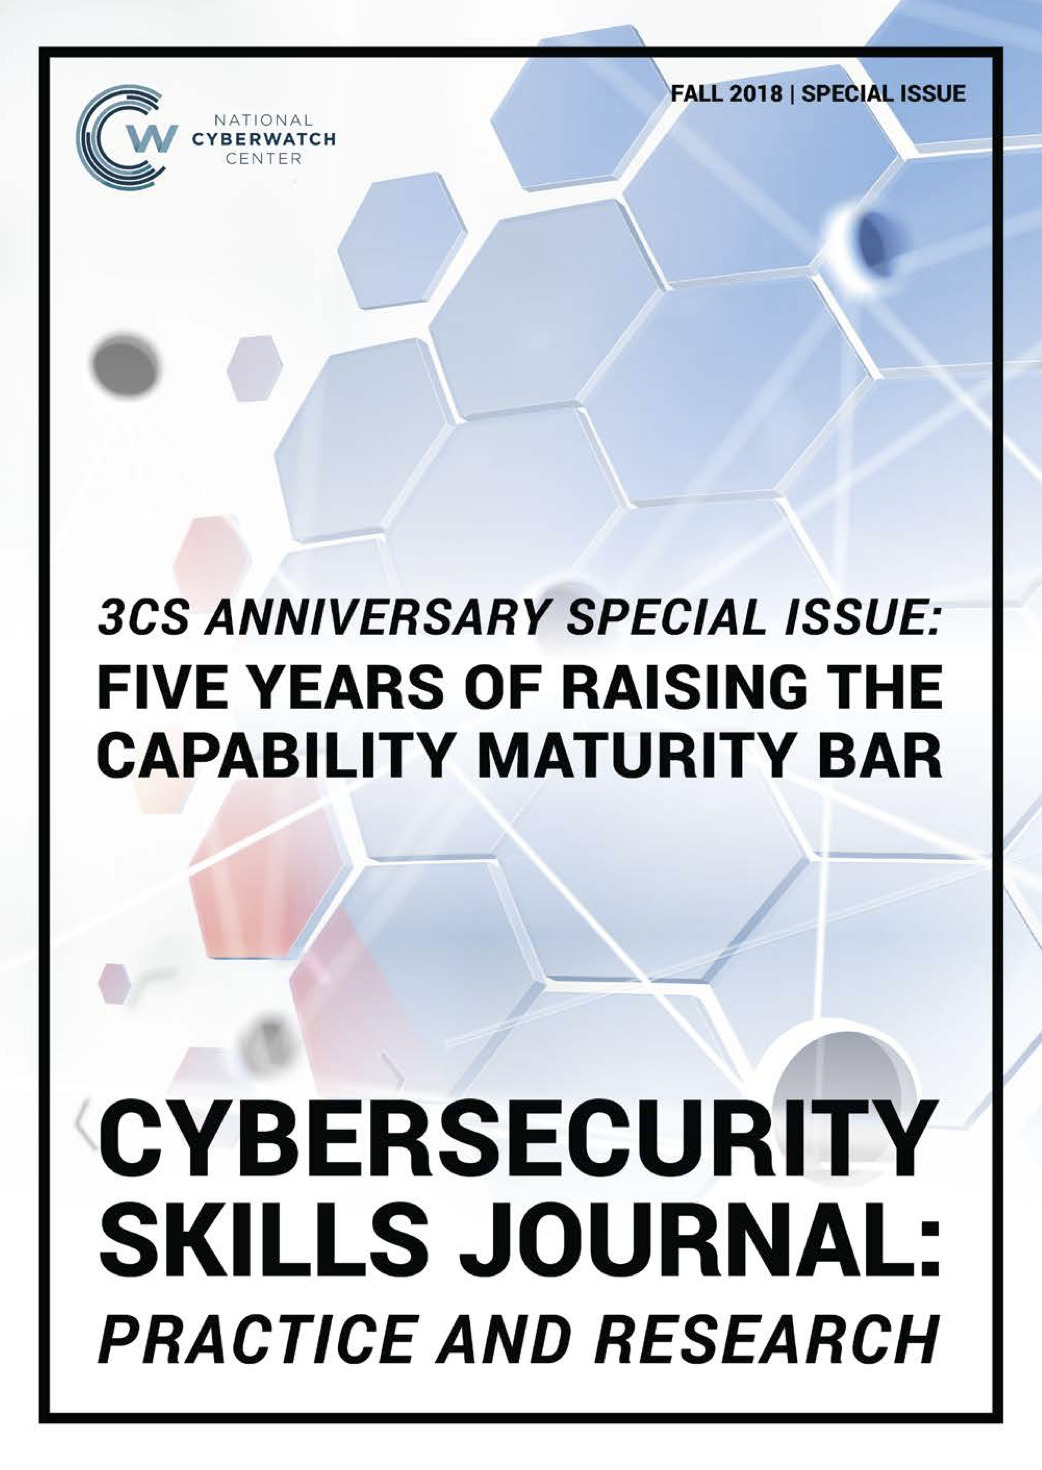 Cybersecurity Skills Journal: Practice and Research: Fall 2018 Special Issue: 3CS Anniversary Special Issue – Five Years of Raising the Capability Maturity Bar